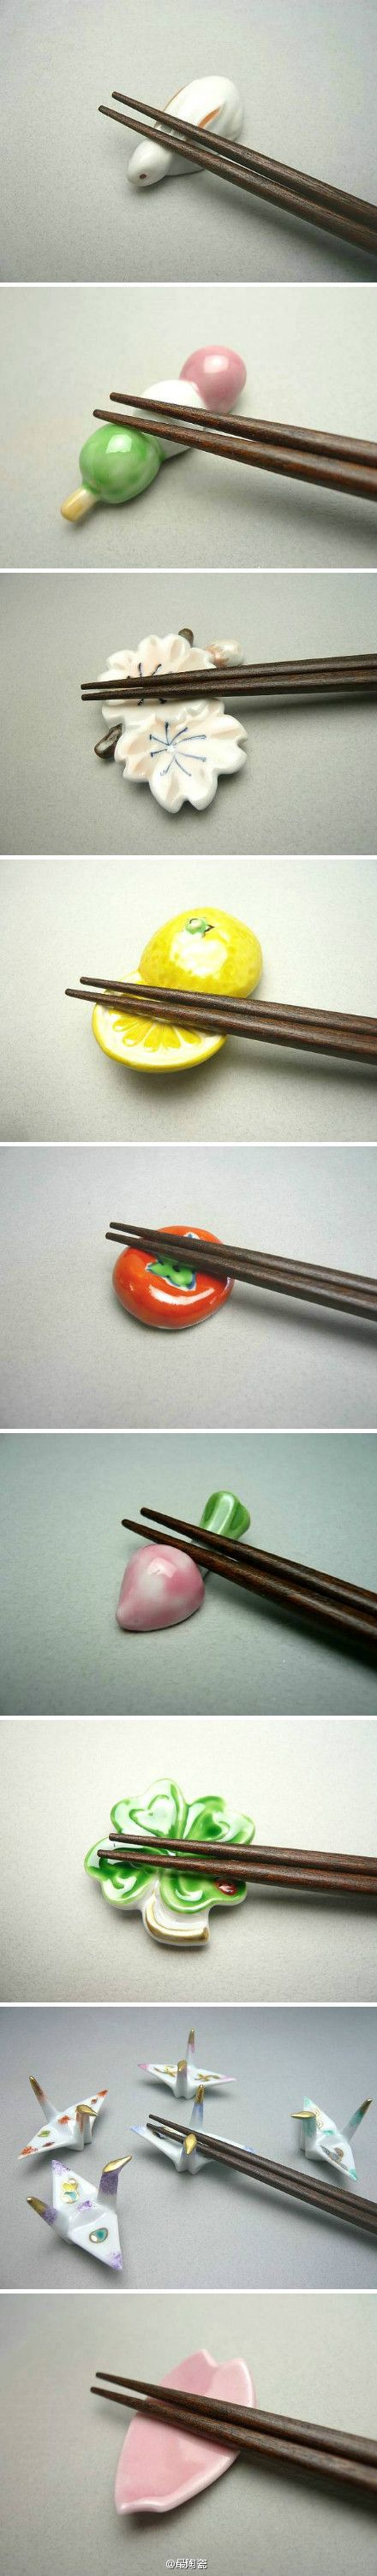 Chopstick rest  ...I MUST buy one of these